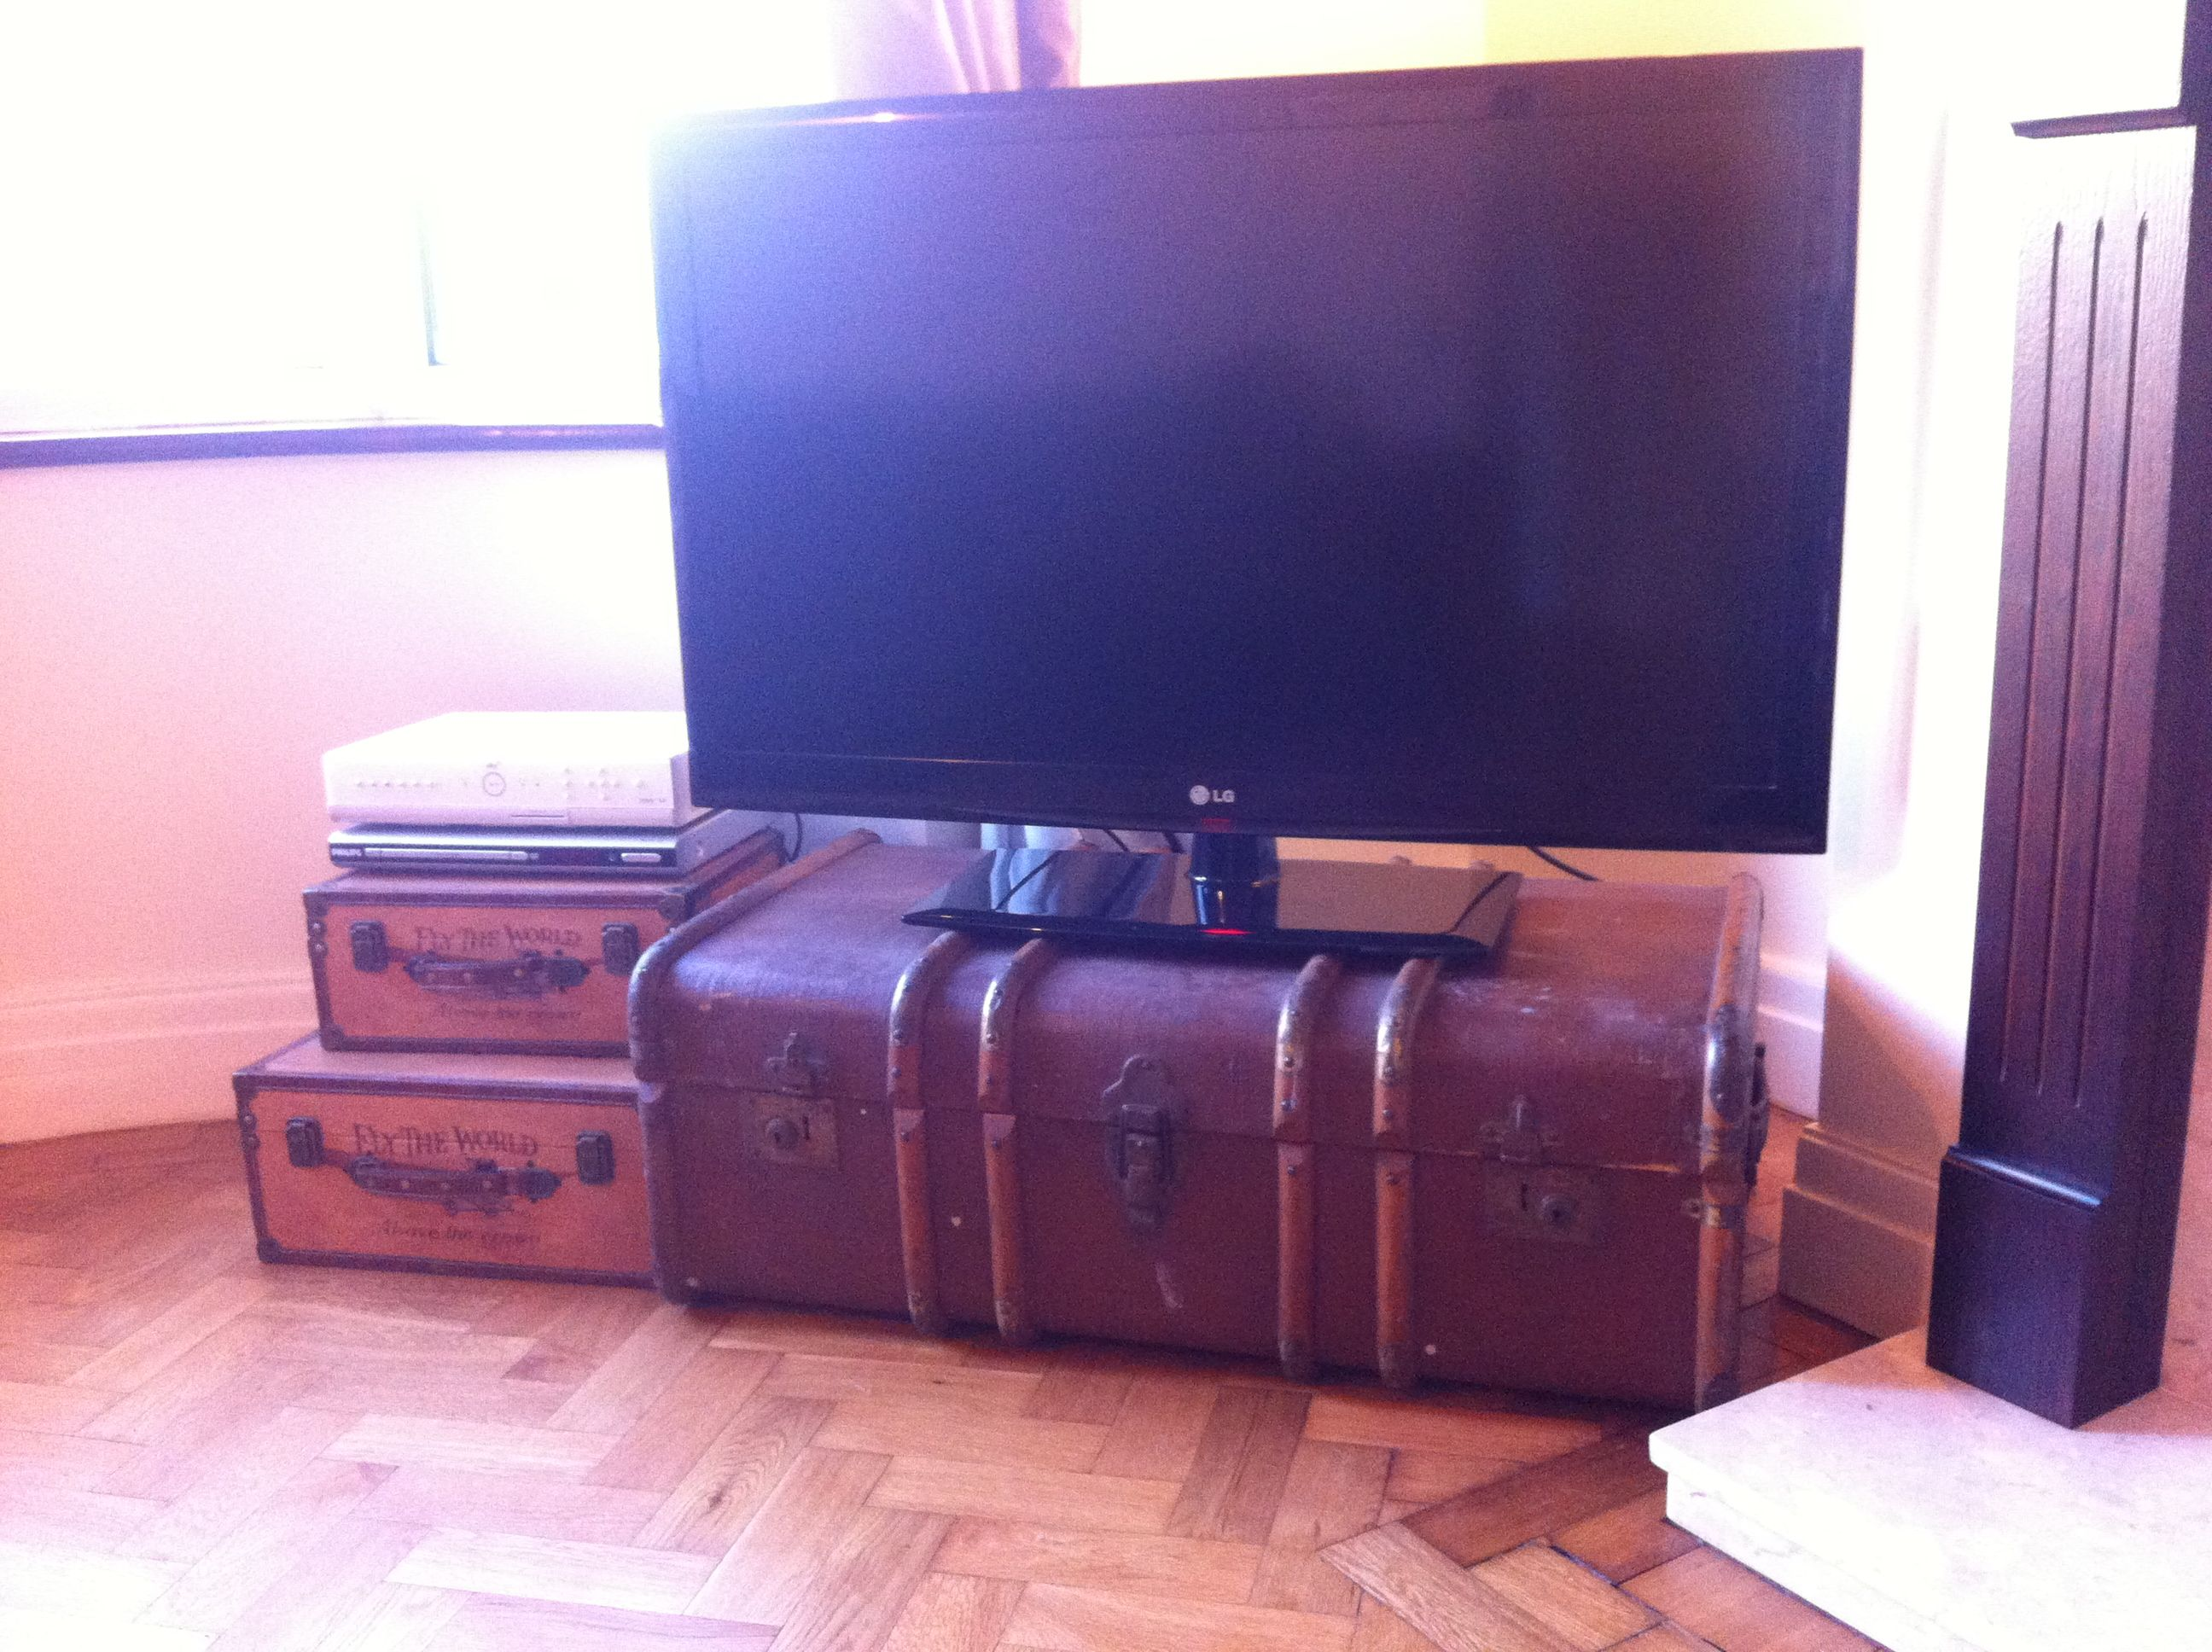 My Vintage Trunk Tv Stand 25 At A Car Boot Sale Bargain My Mum Got It Me Love It Vintage Trunks Car Boot Sale Tv Stand